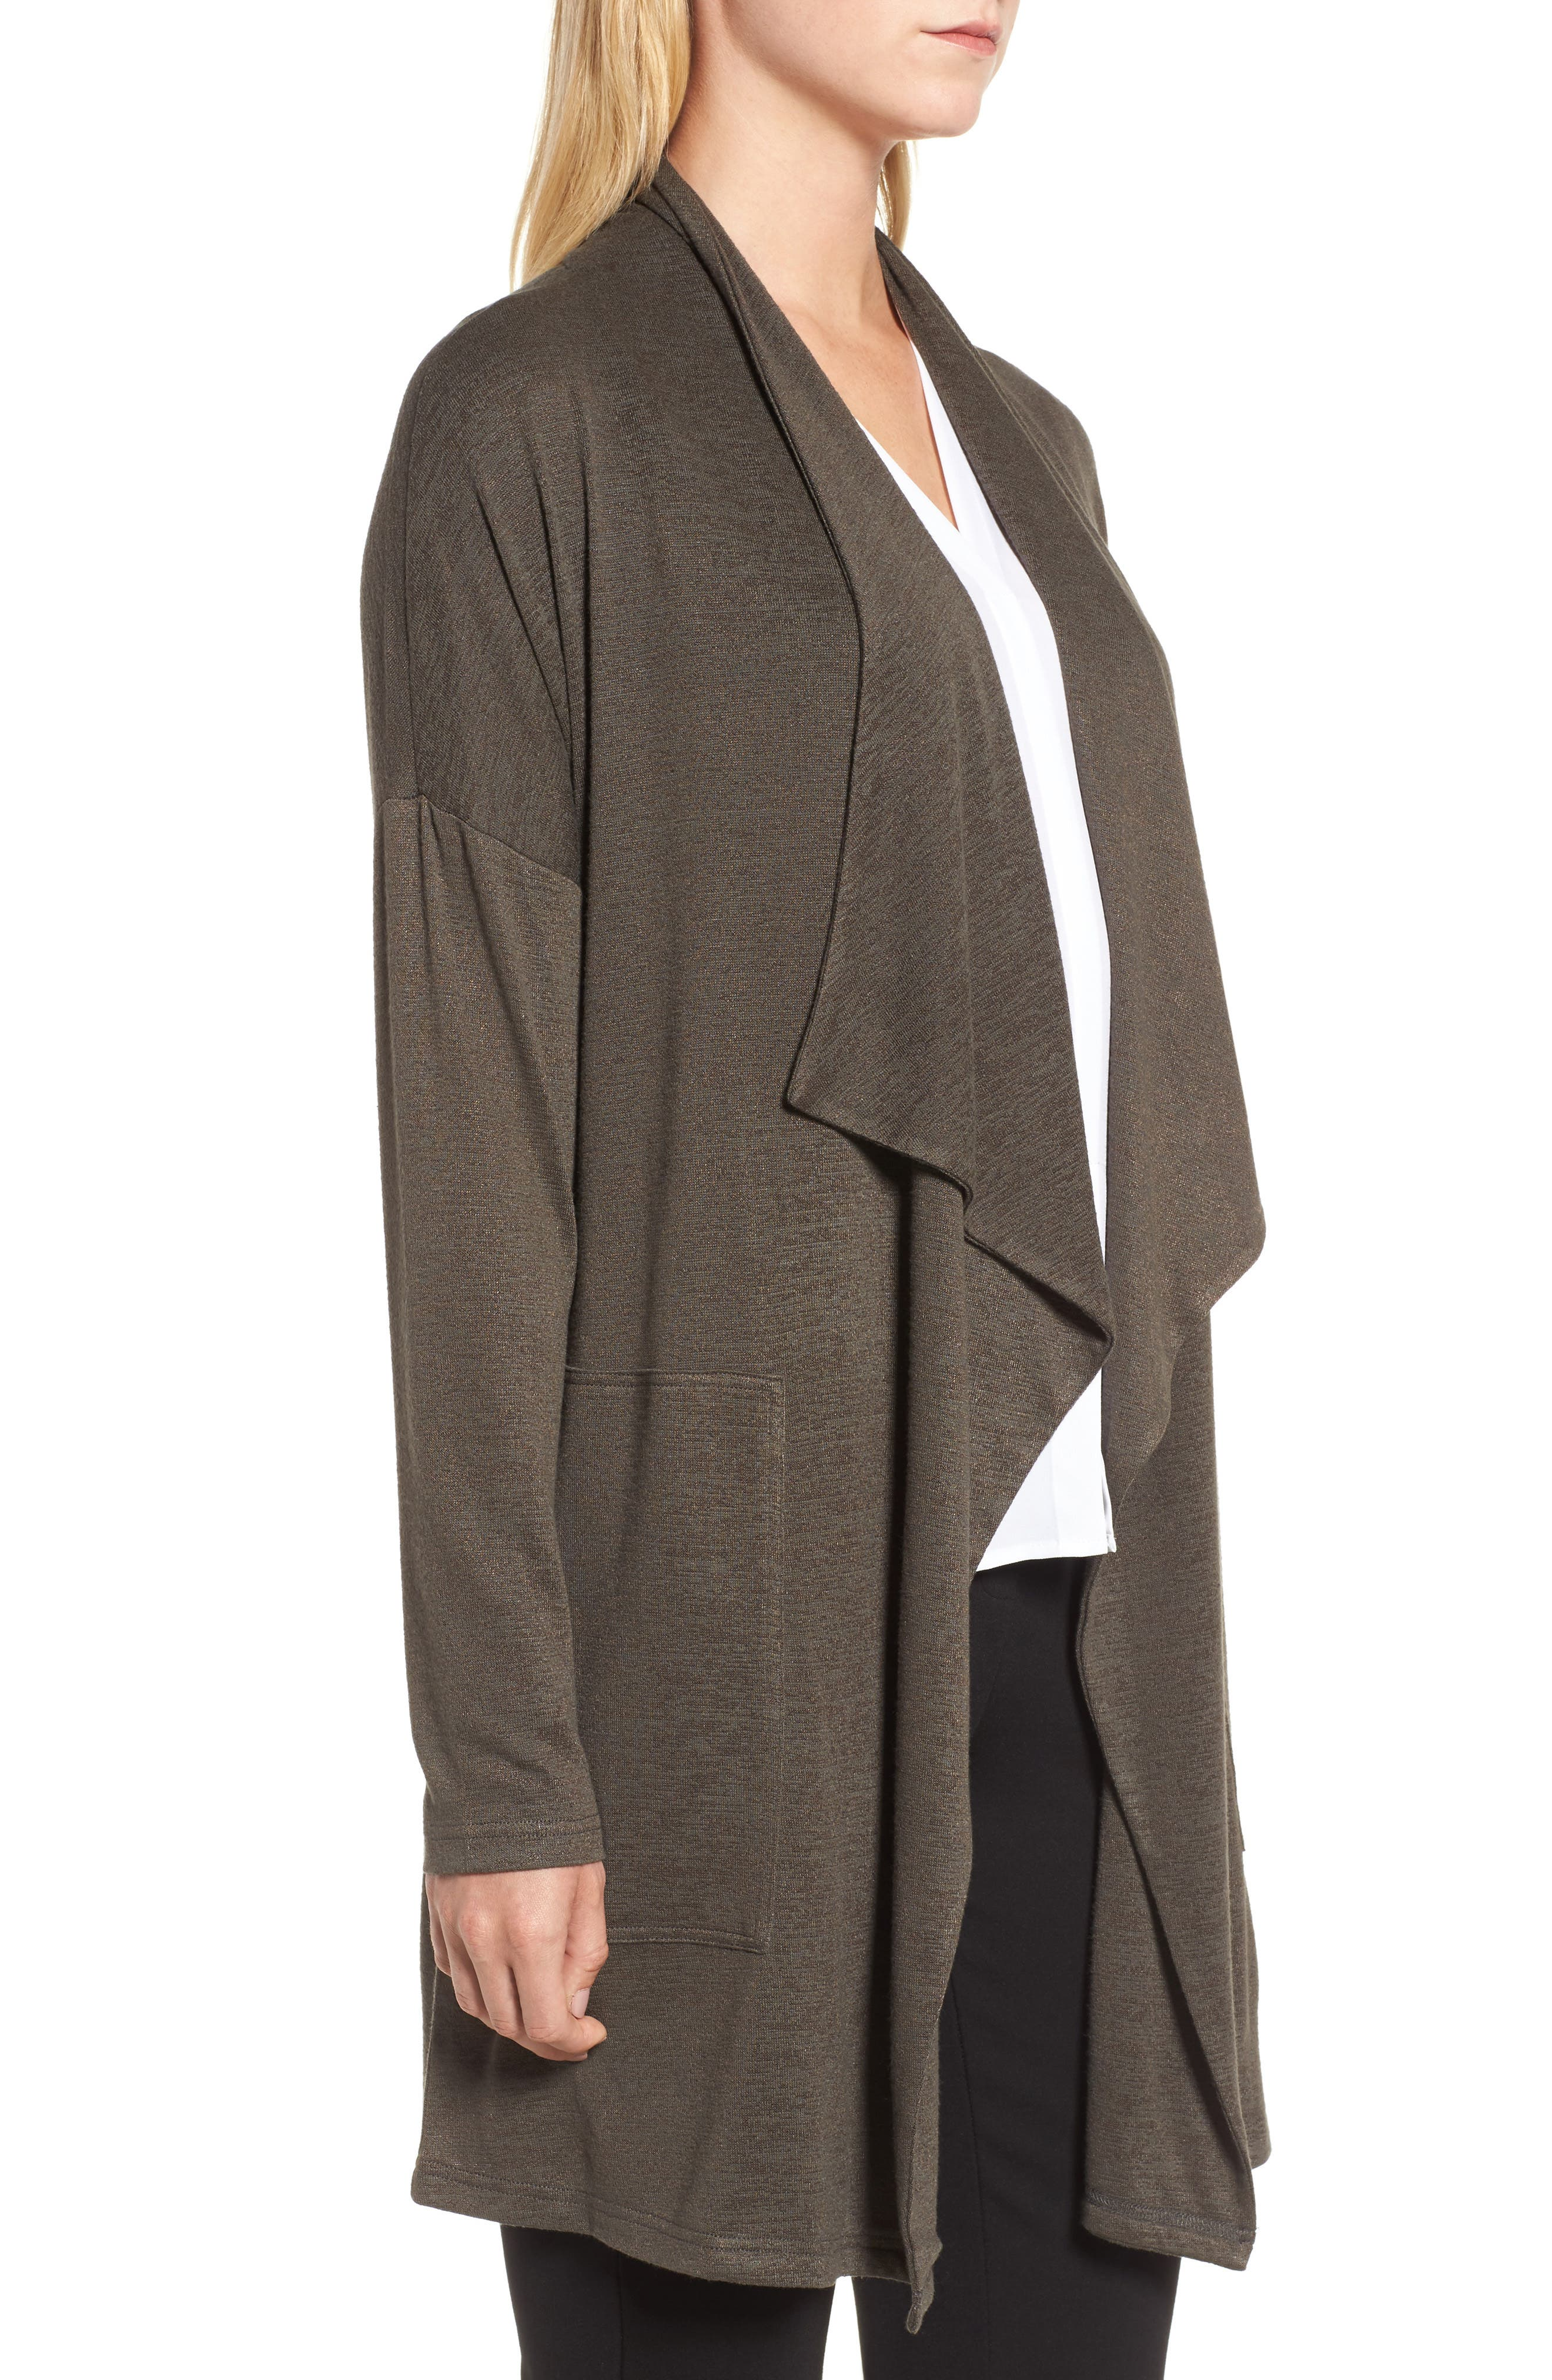 Every Occasion Drape Front Jacket,                             Alternate thumbnail 11, color,